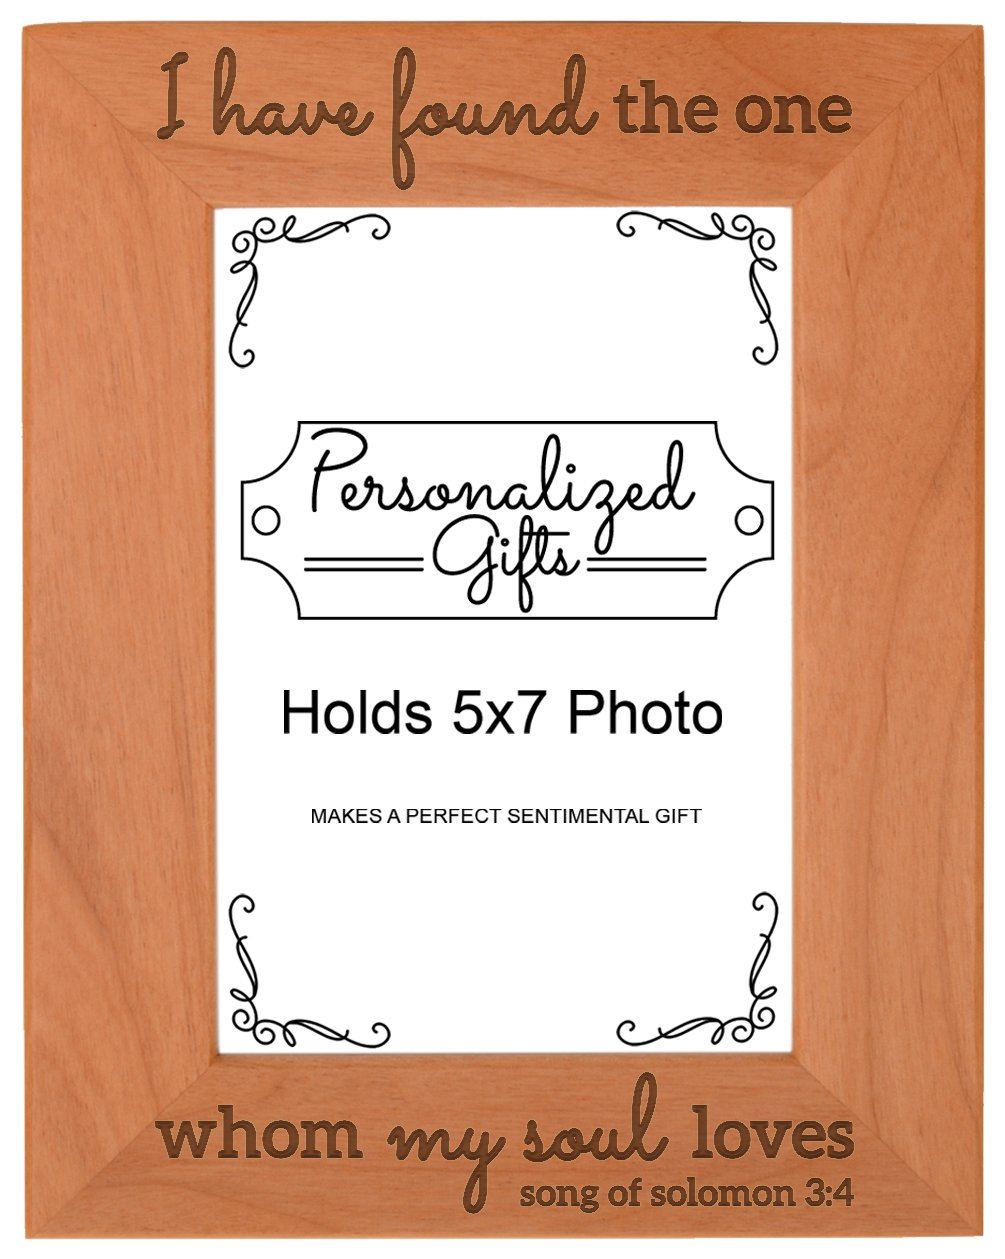 Personalized Gifts Wedding Gift Couples Christian Bible Verse Natural Wood Engraved 5x7 Portrait Picture Frame Wood